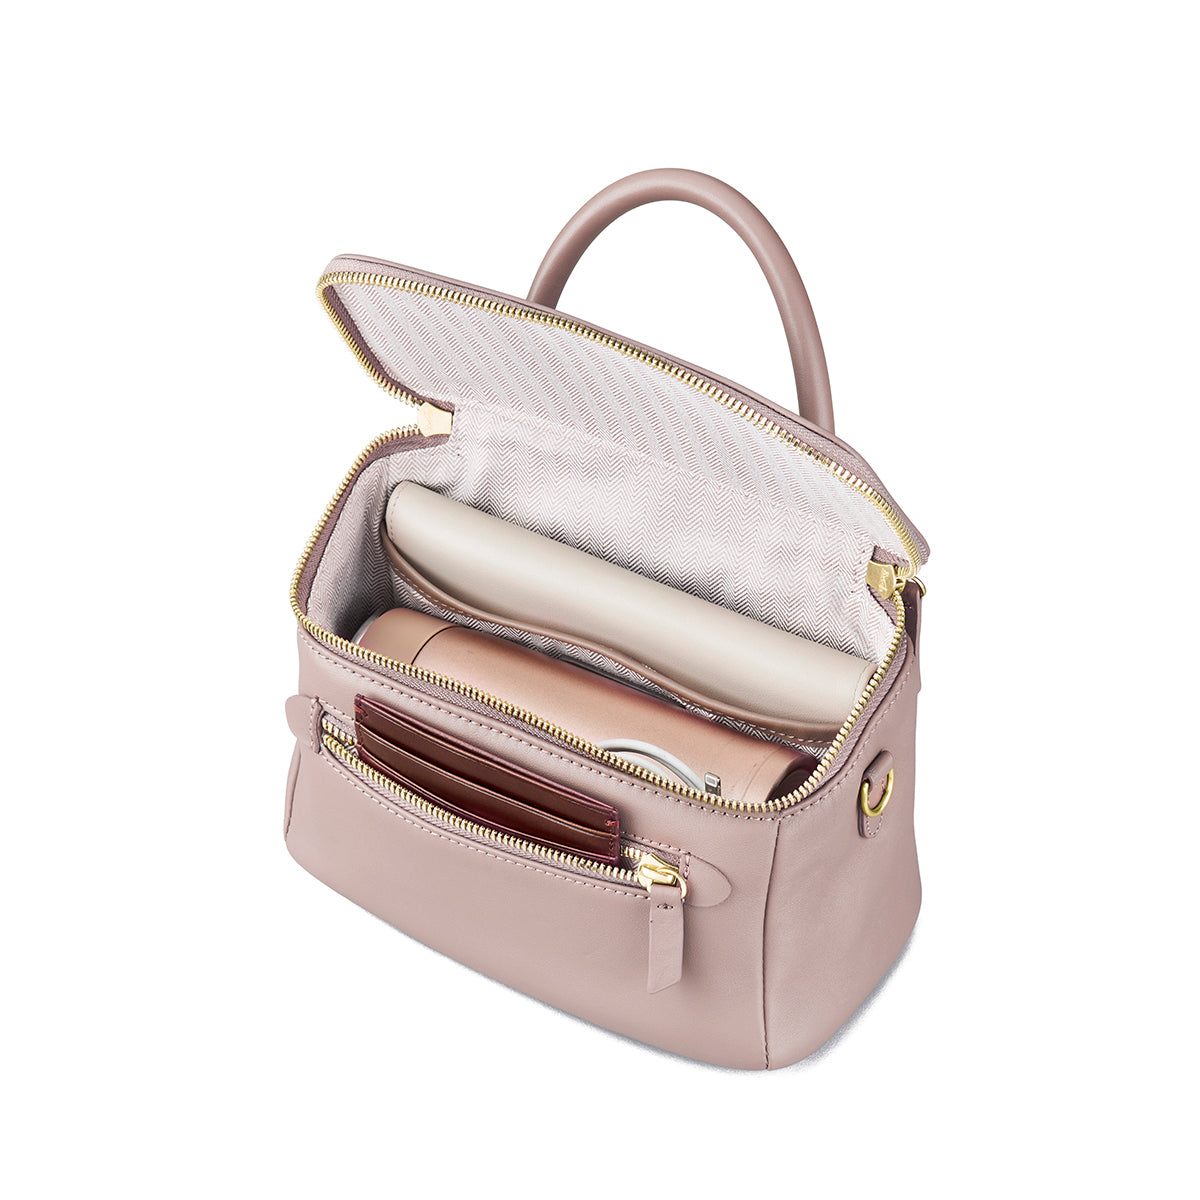 D'ryna Small Handbag (Leather)